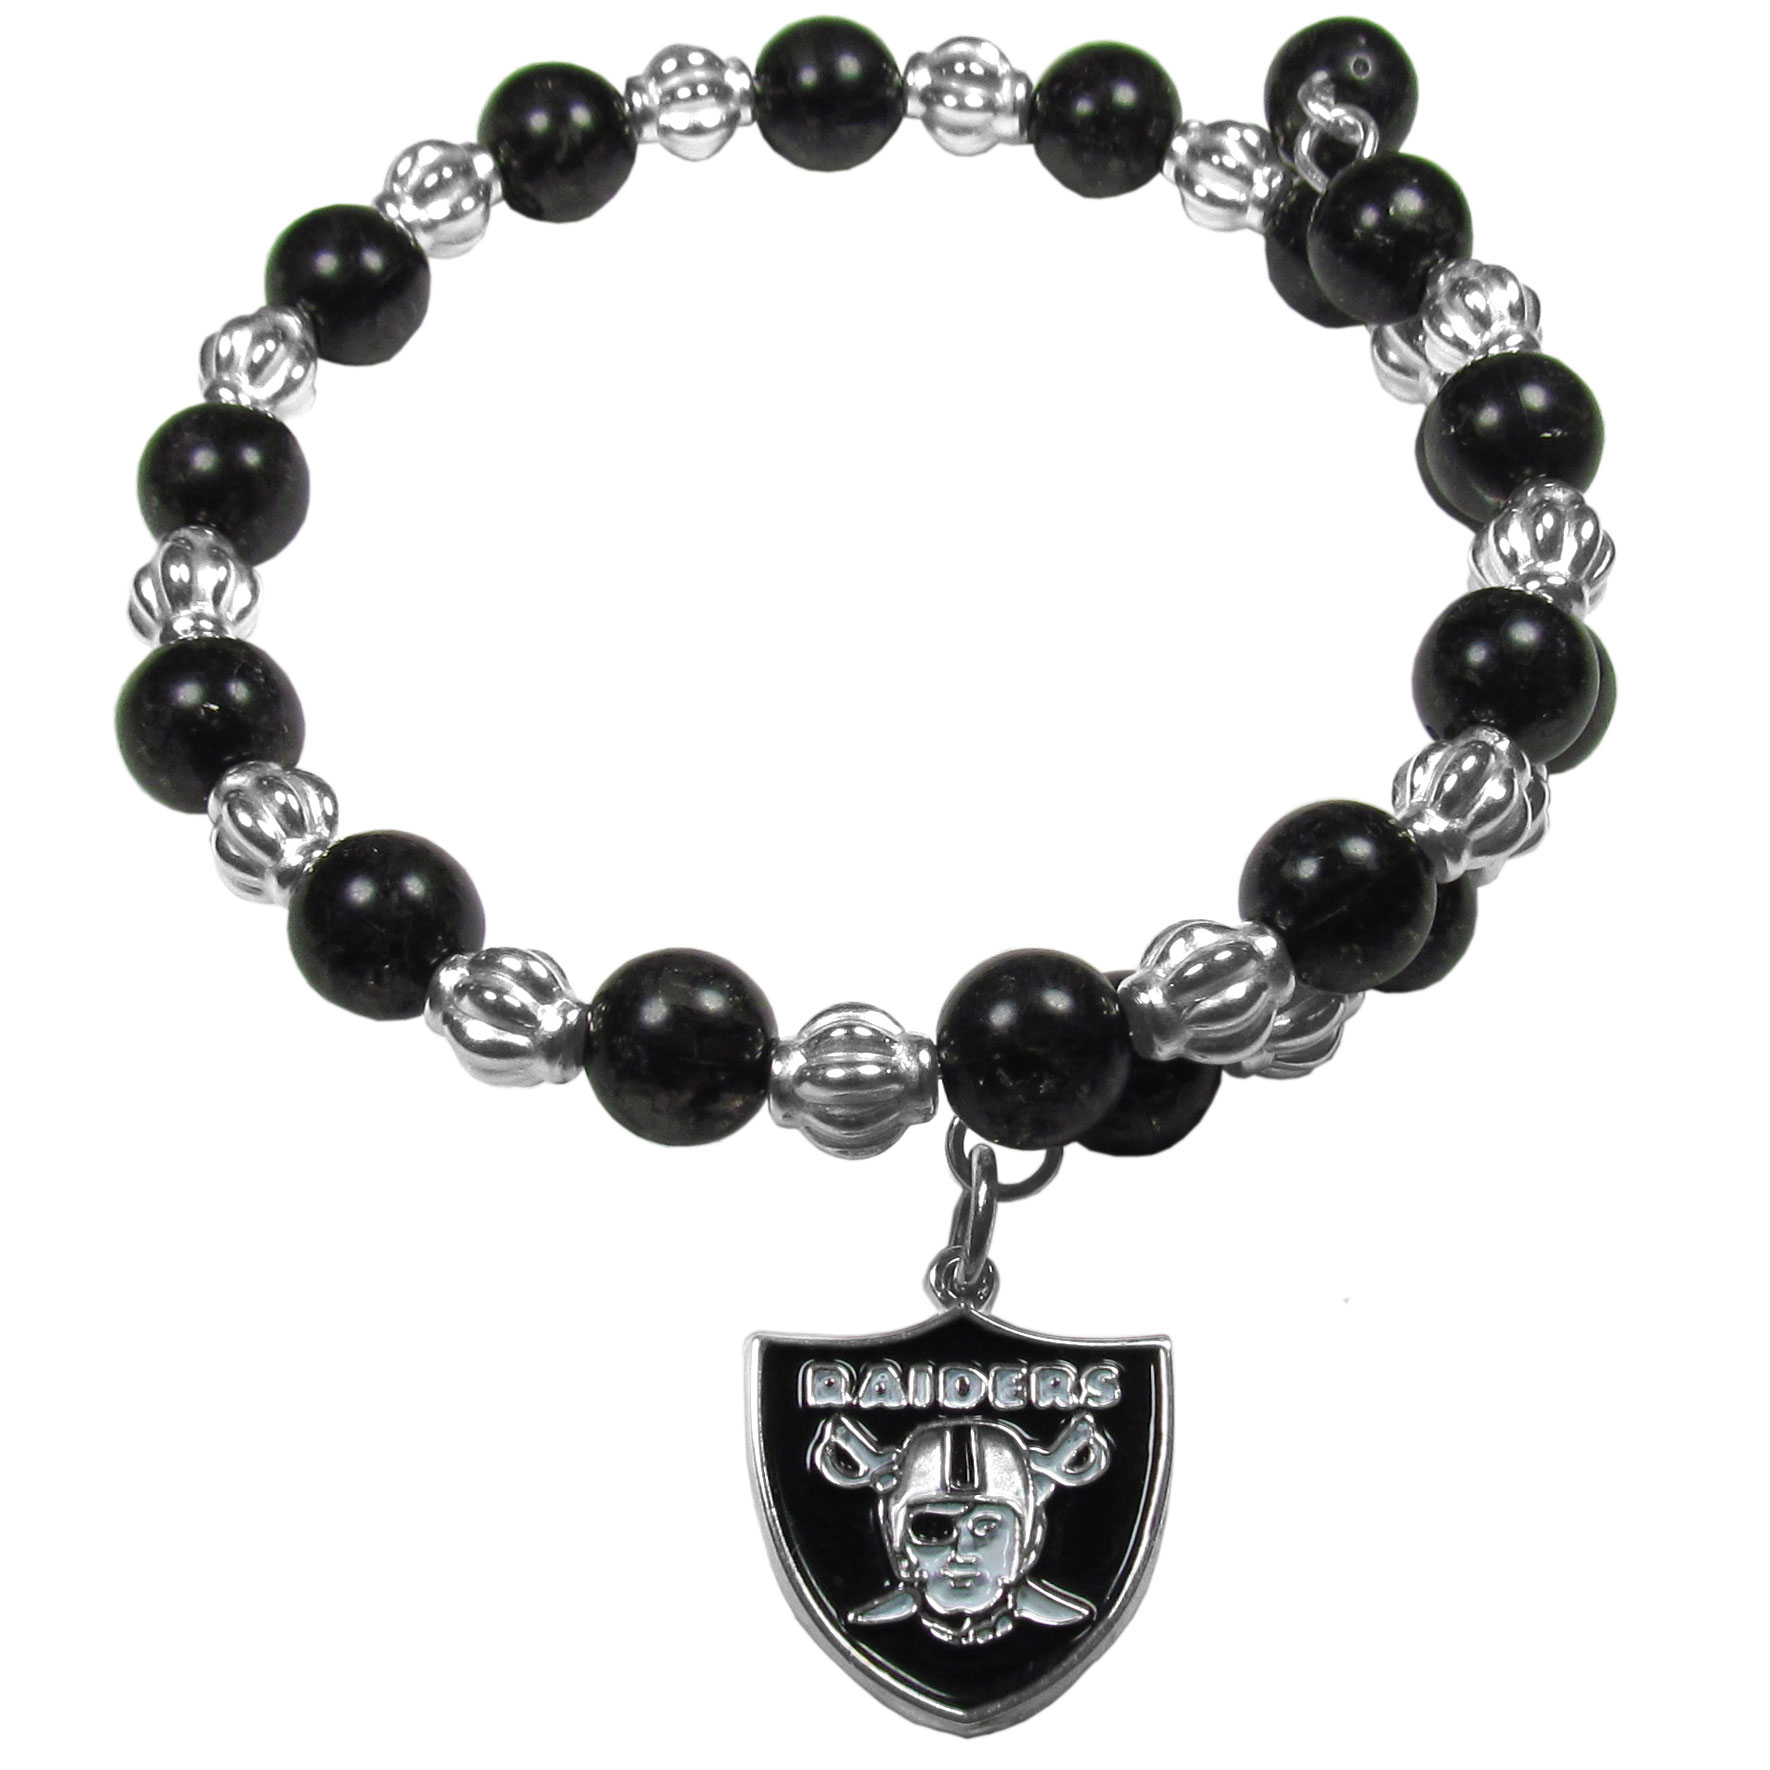 Oakland Raiders Bead Memory Wire Bracelet - Our Oakland Raiders memory wire bead bracelet is trendy way to show off your love of the game. The double wrap bracelet is completely covered in 7.5 mm crystals that are broken up with silvertoned beads creating a designer look with a sporty twist. The bracelet features a fully cast, metal team charm that has expertly enameled team colors. This fashion jewelry piece is a must-have for the die-hard fan that chic look that can dress up any outfit.